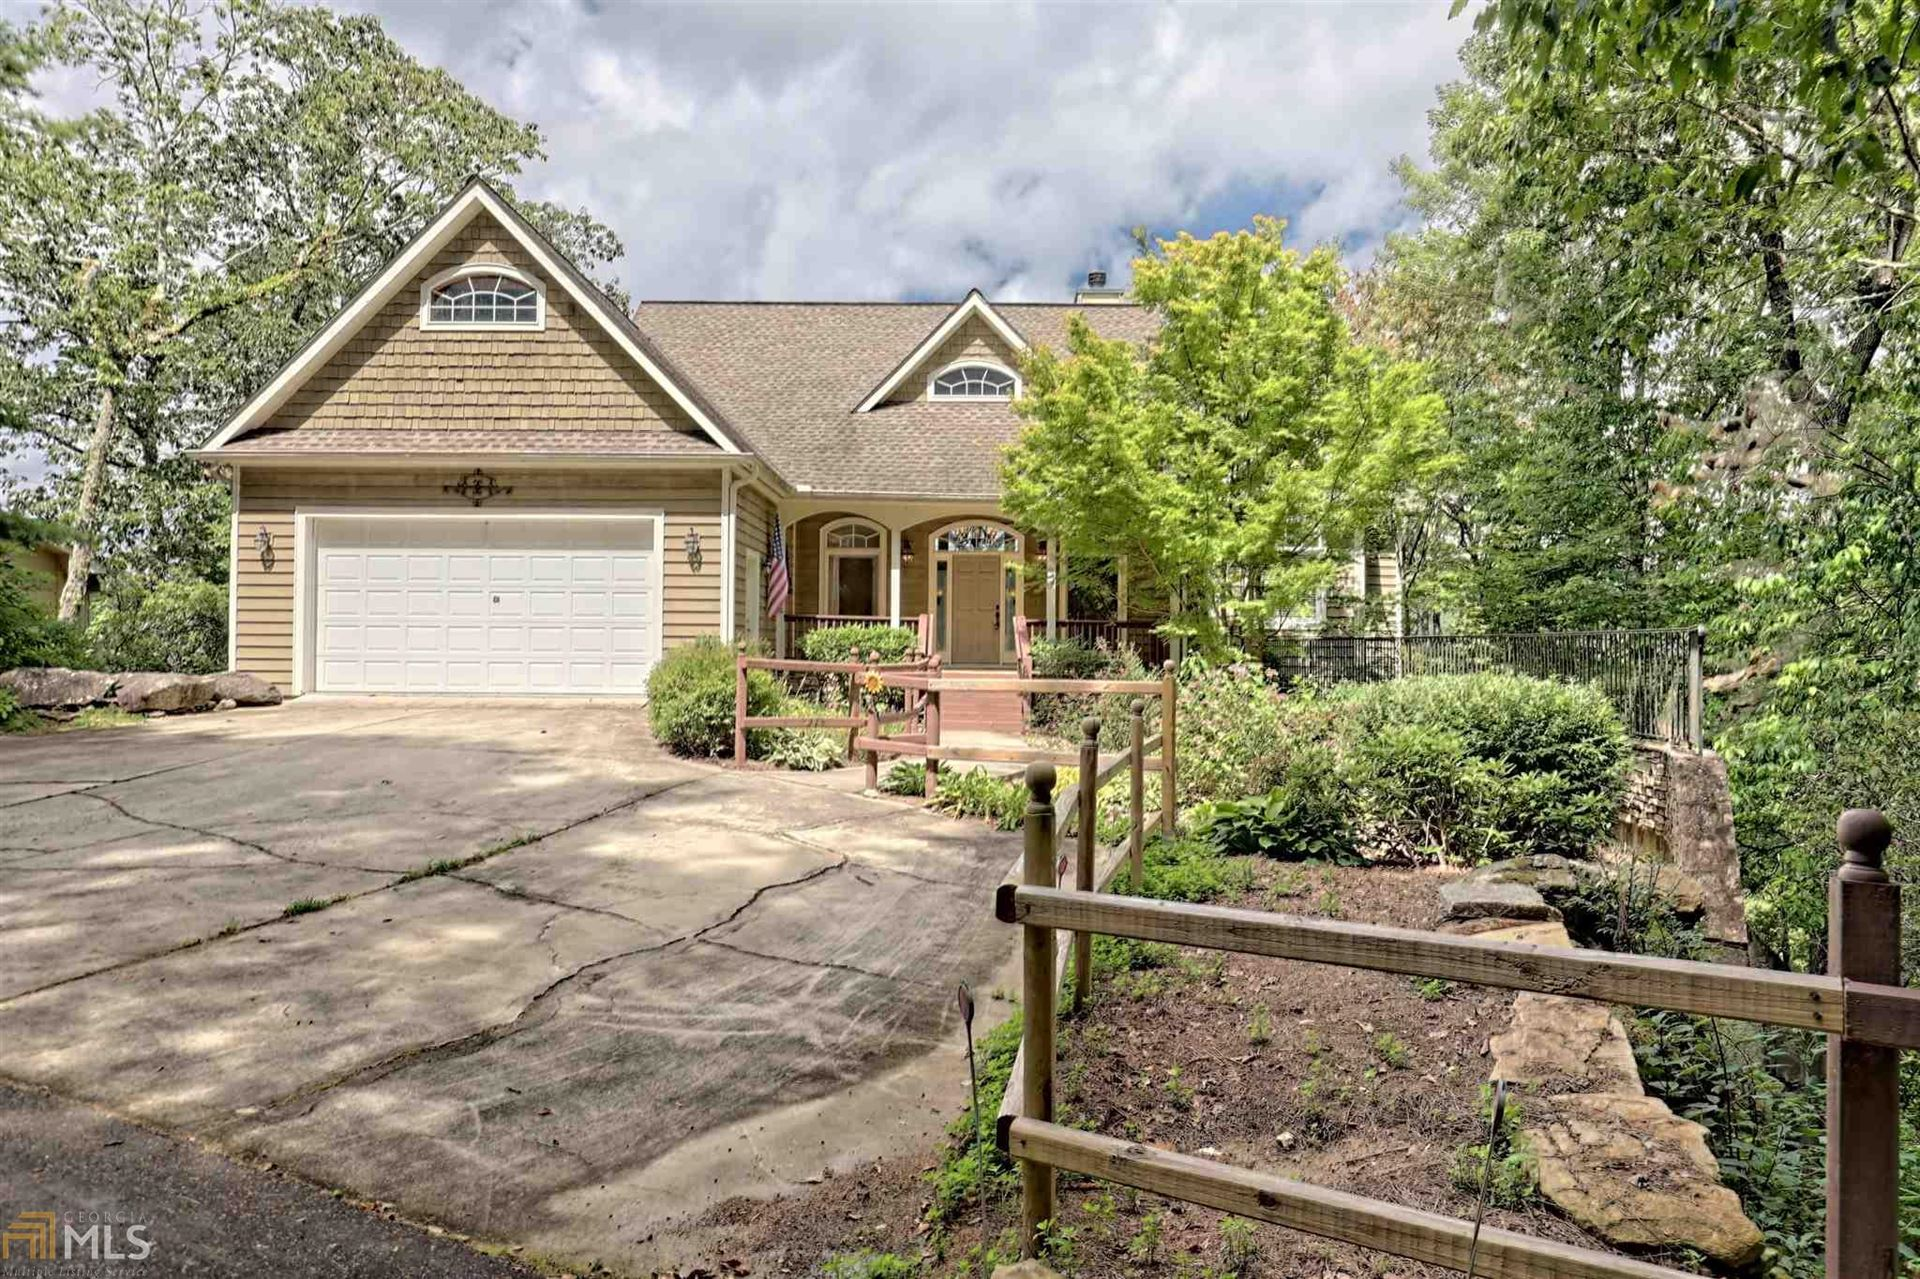 Photo of 81 Cedar Ln, Sky Valley, GA 30537 (MLS # 8848052)